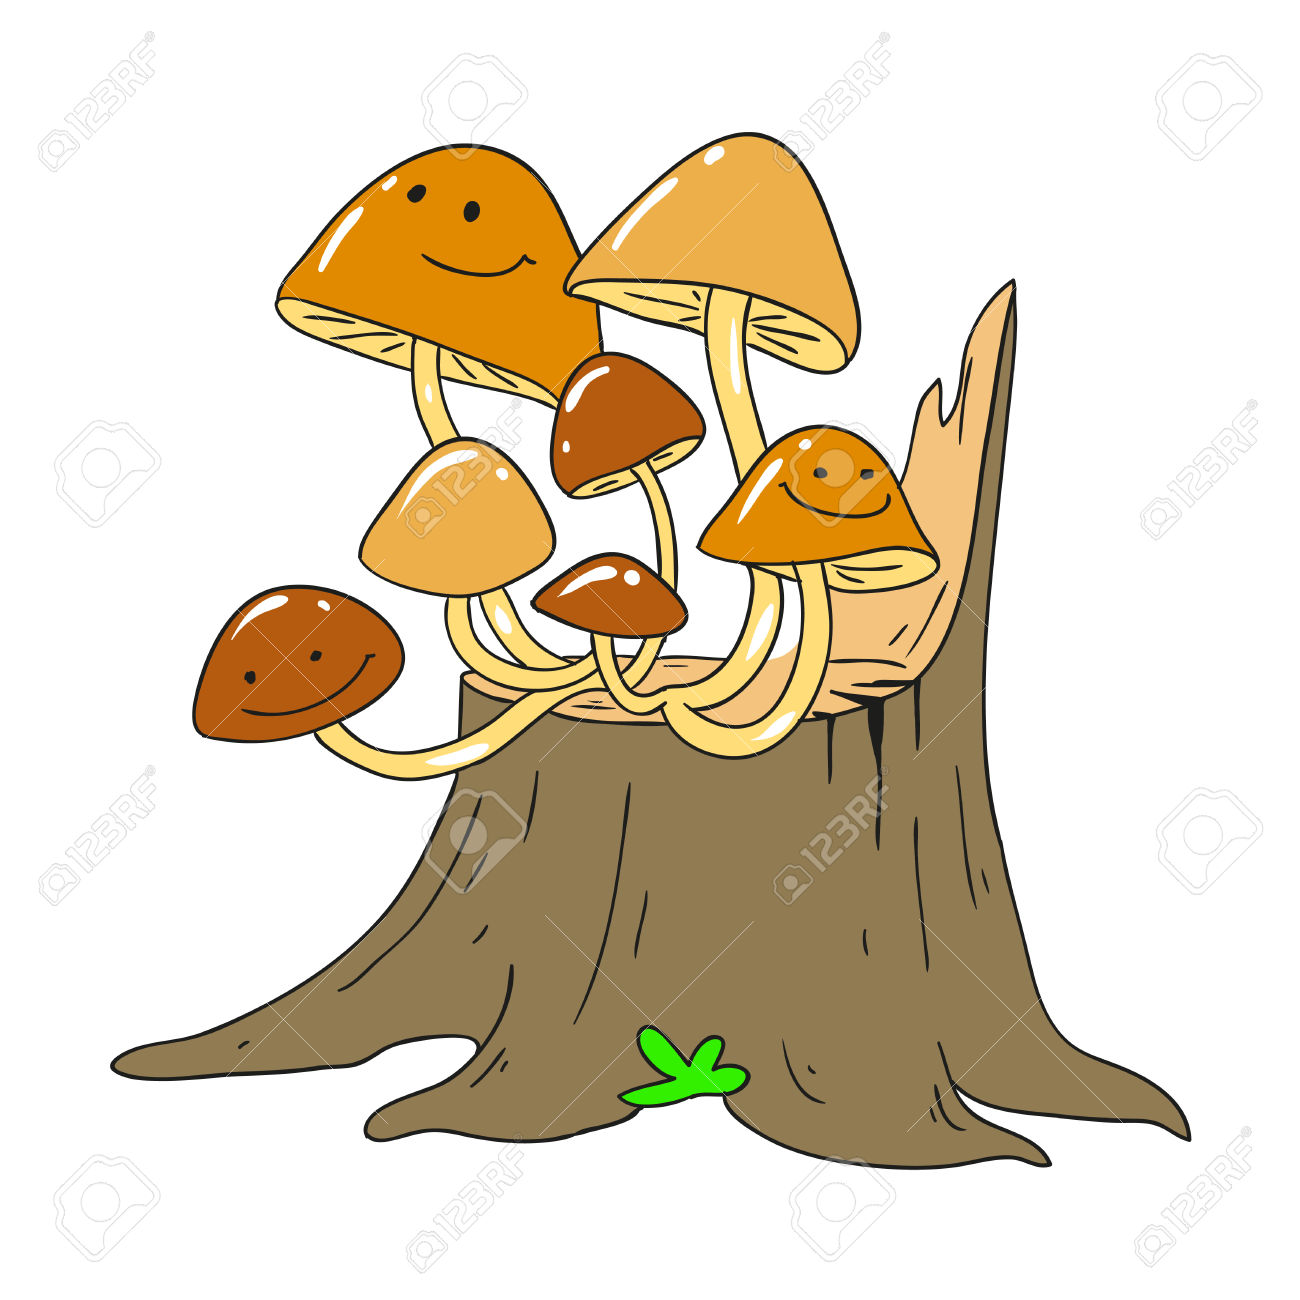 Honey Fungus On A Tree Stump. Mycelium. Vector Mushroom Character.